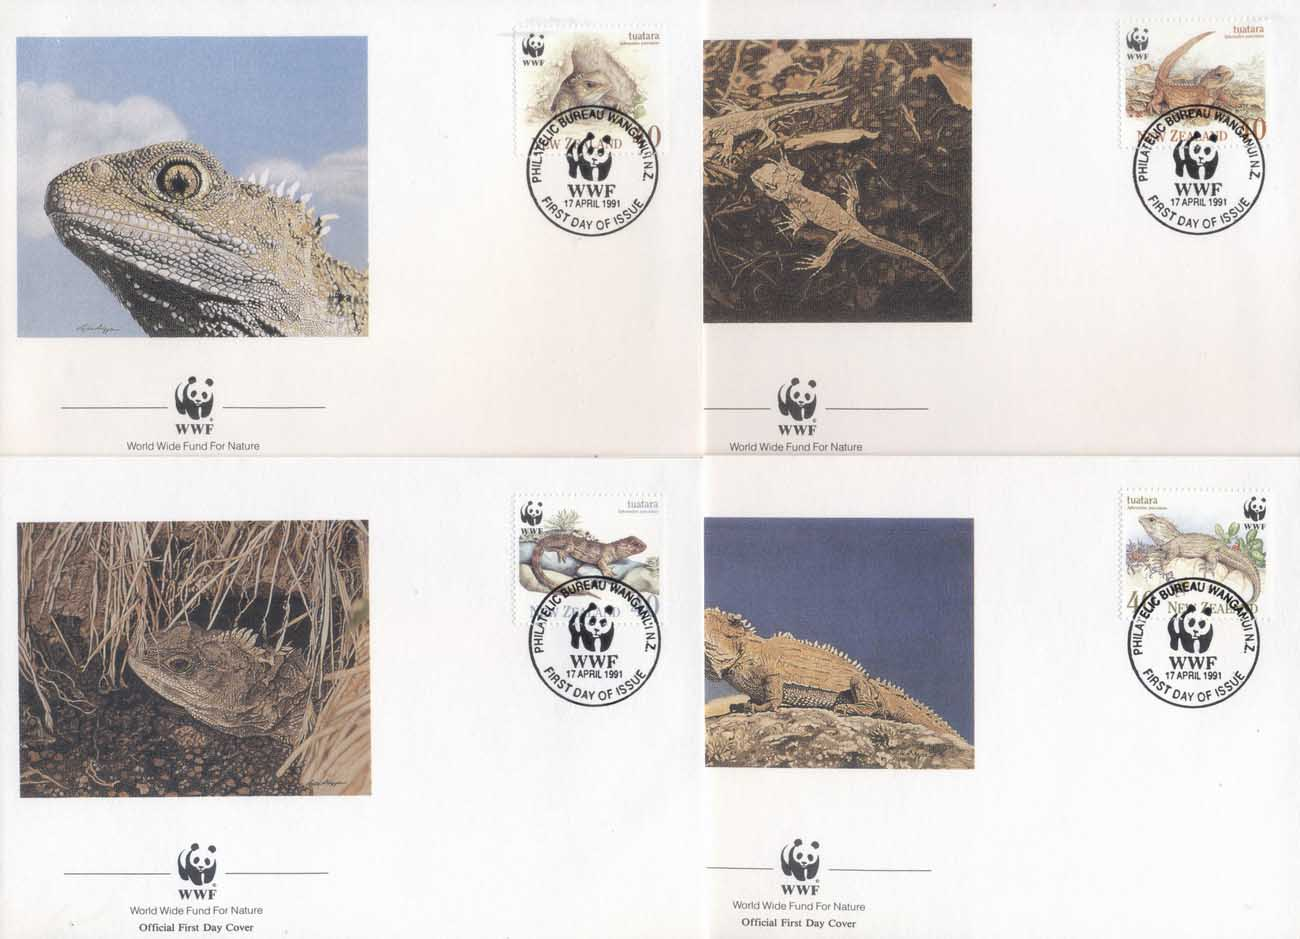 New Zealand 1991 WWF Tuatara, Reptile FDC - Click Image to Close